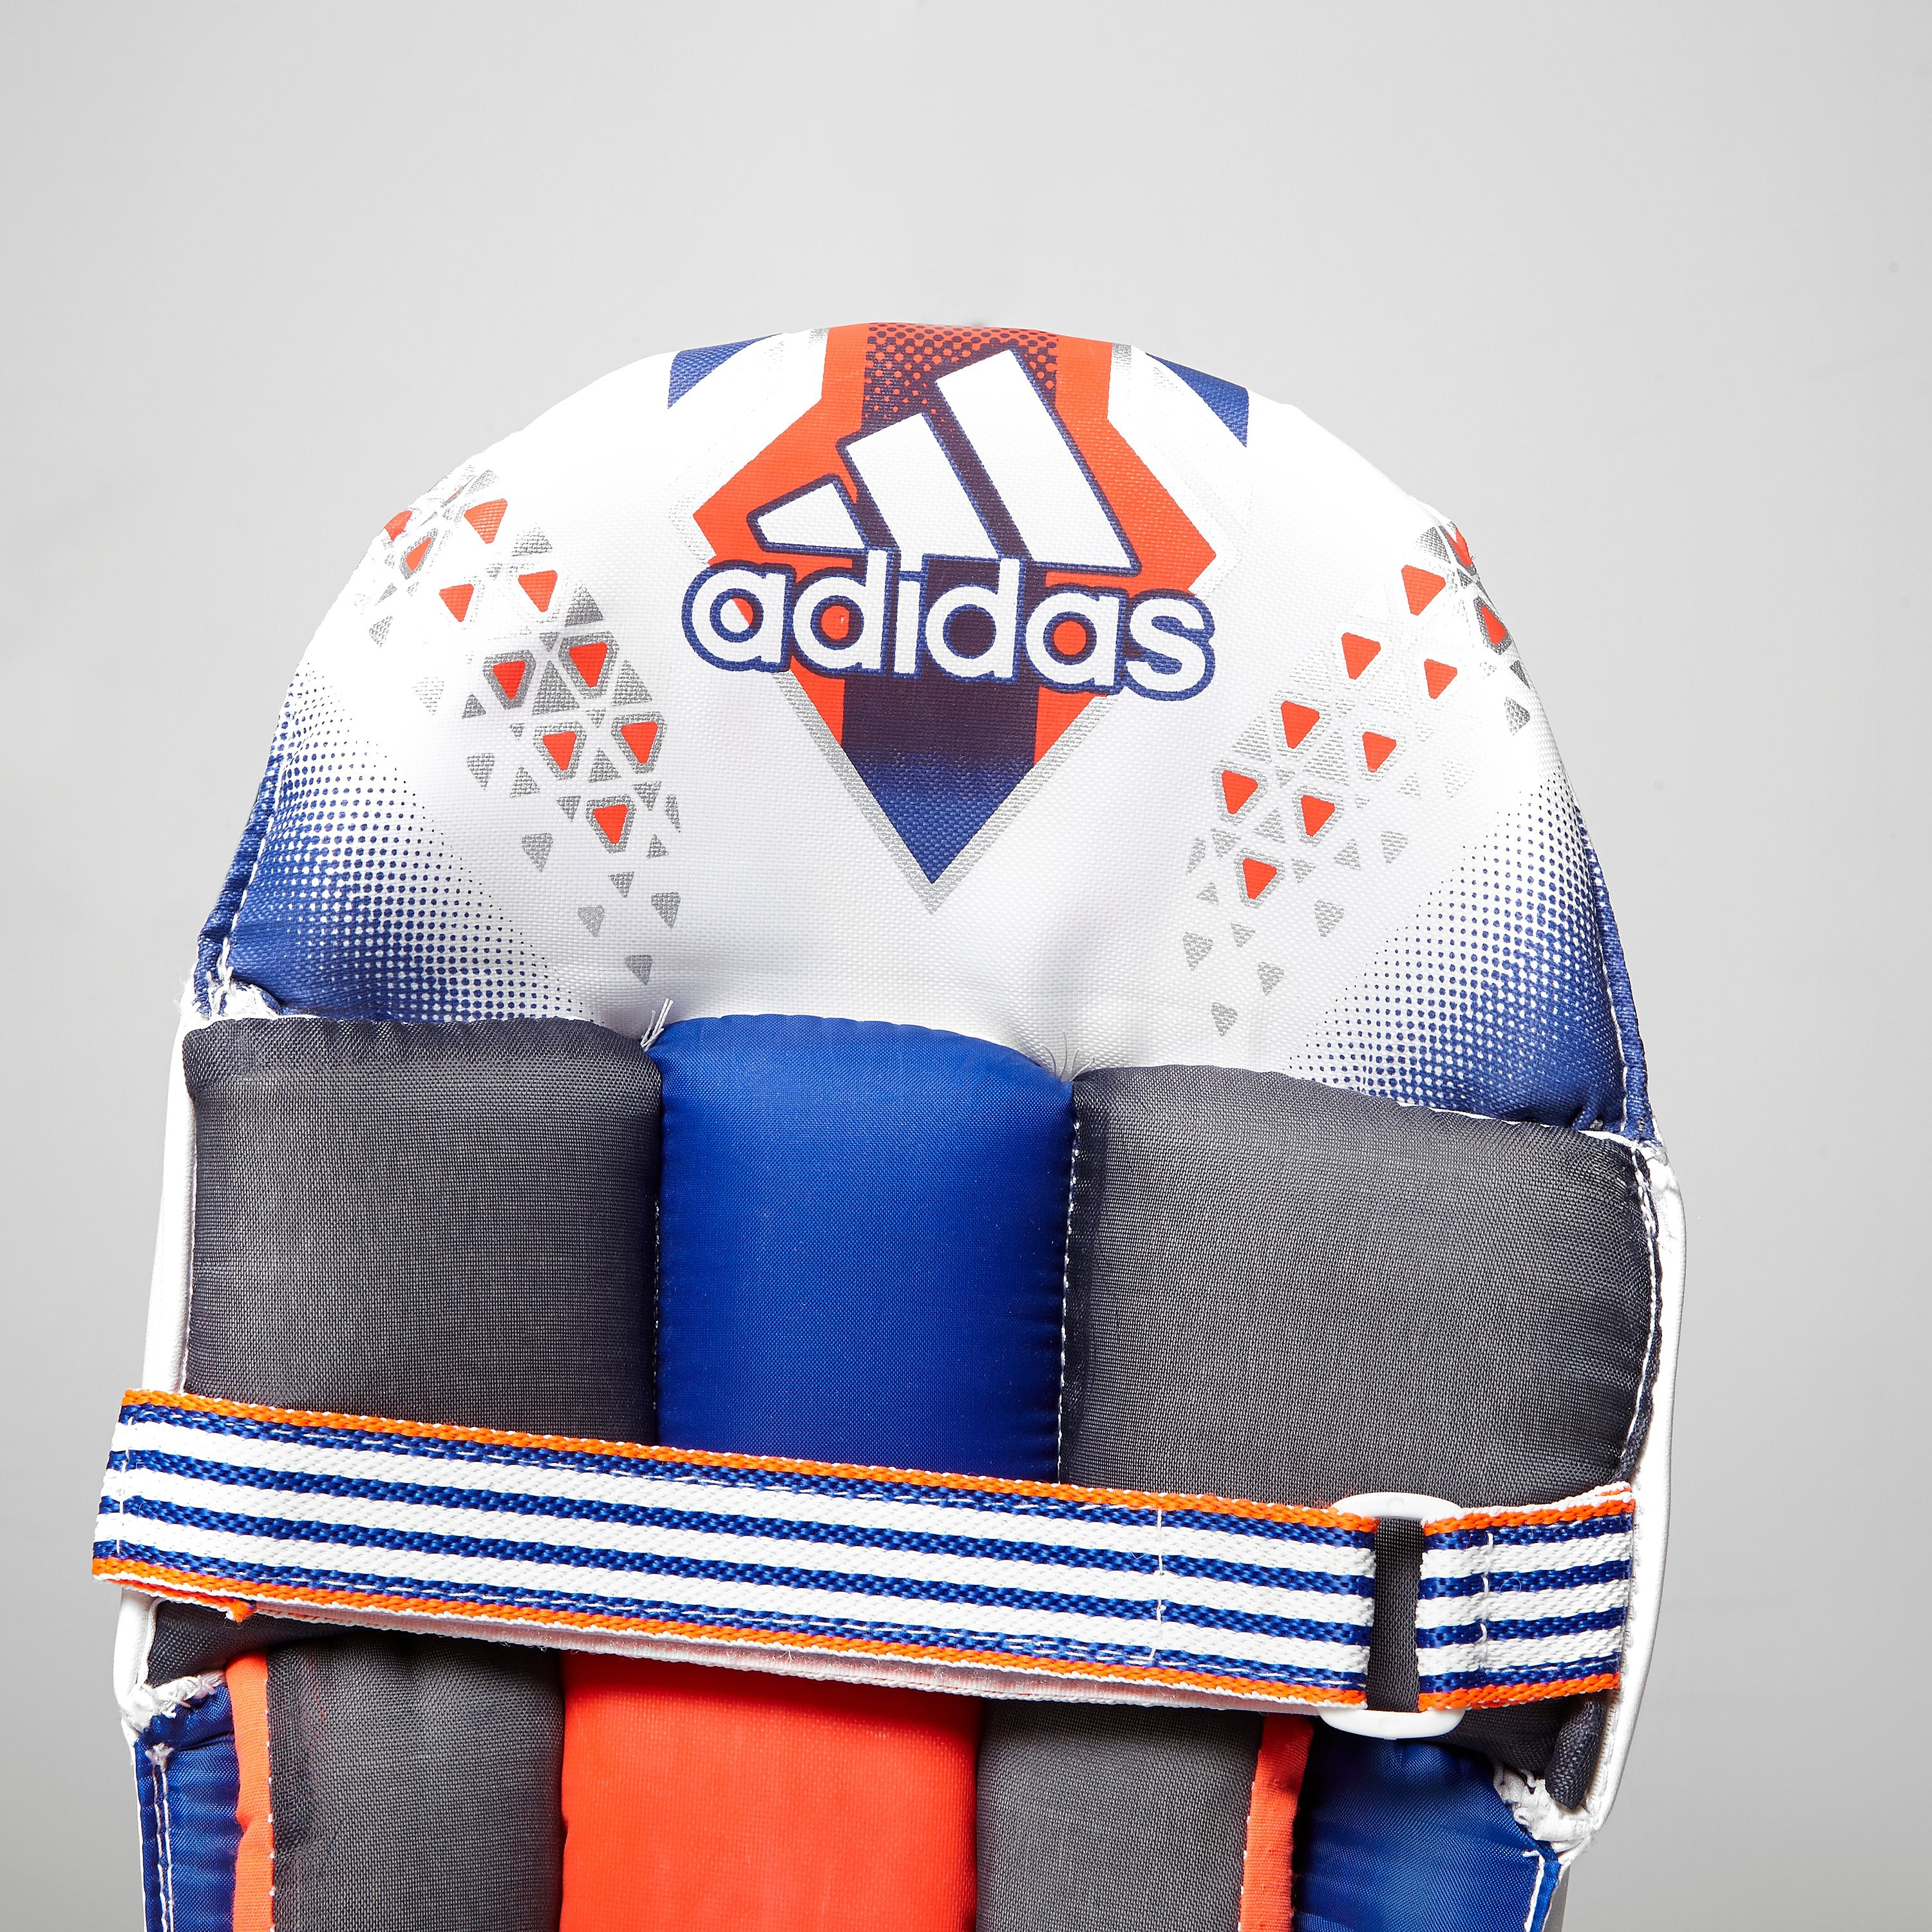 adidas Club Junior Batting Pads